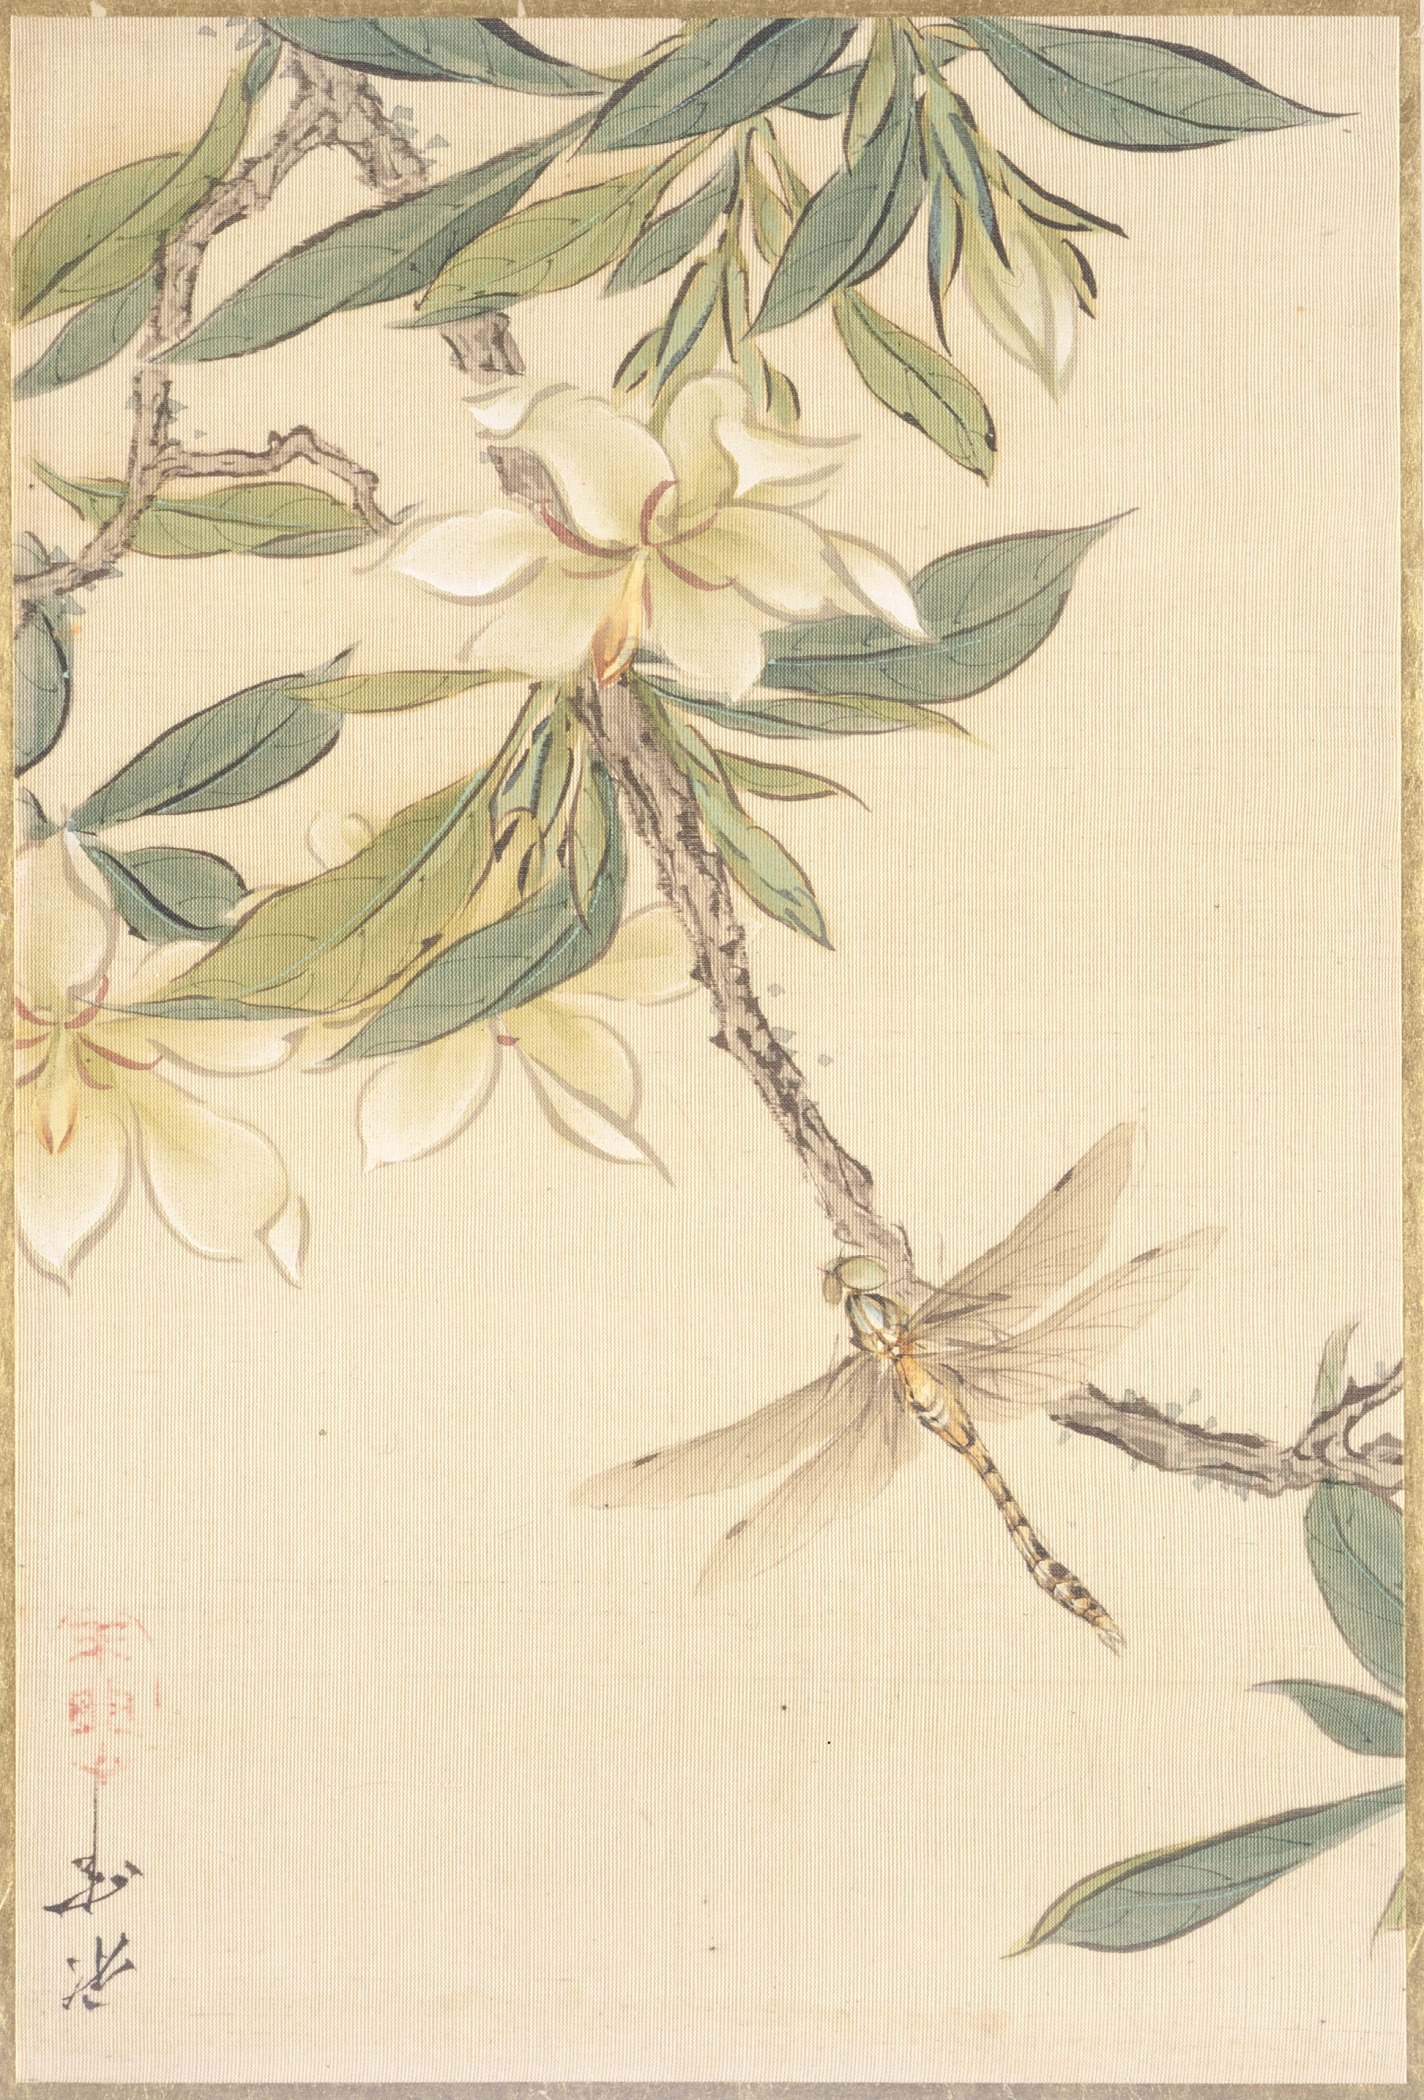 https://upload.wikimedia.org/wikipedia/commons/d/db/Pictures_of_Flowers_and_Birds_LACMA_M.85.99_%286_of_25%29.jpg